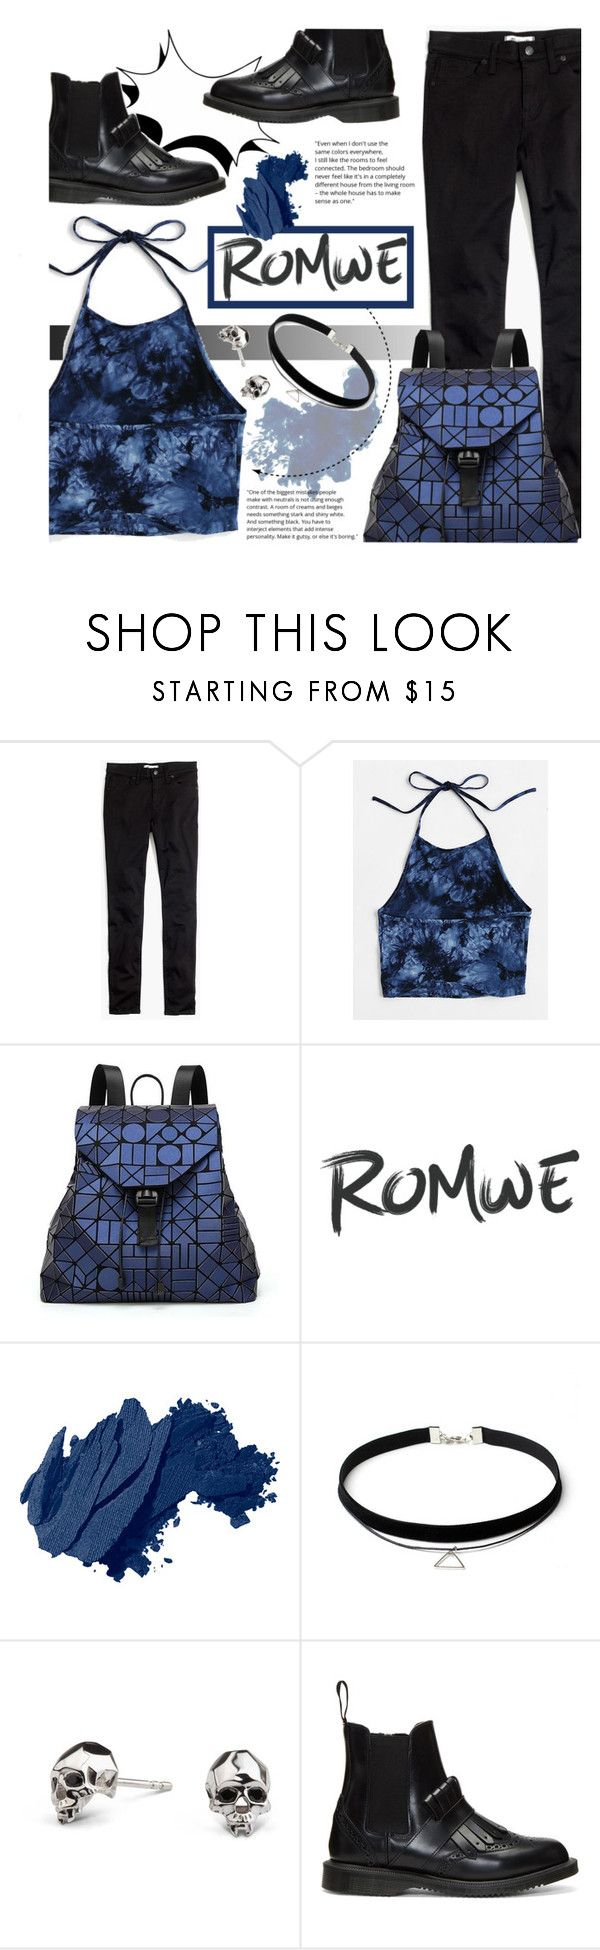 """""""Romwe blue cami top!"""" by nvoyce ❤ liked on Polyvore featuring Madewell, Bao Bao by Issey Miyake, Bobbi Brown Cosmetics, Kasun and Dr. Martens"""